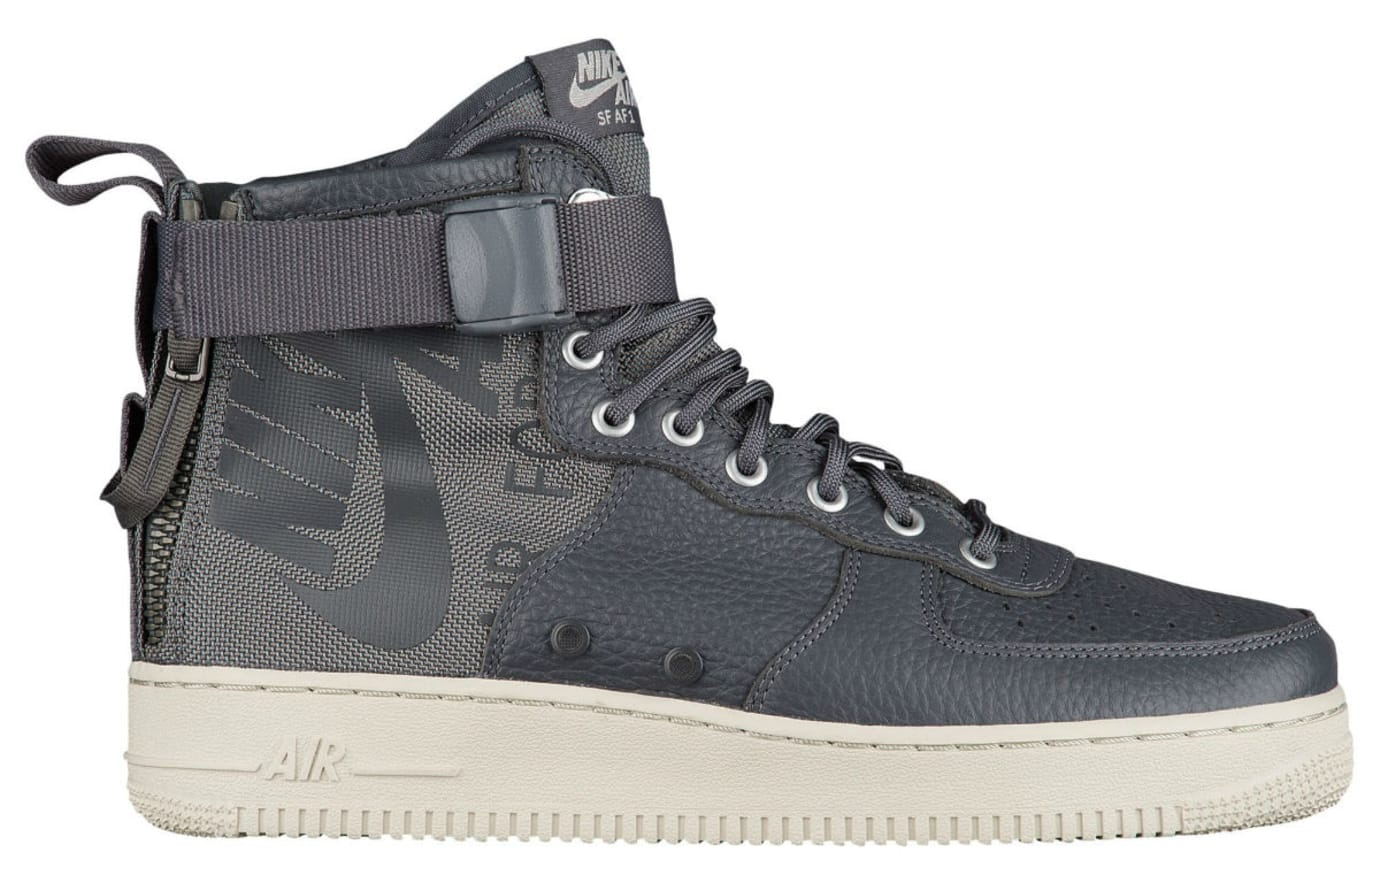 Nike SF Air Force 1 Mid Dark Grey Release Date Profile 917753-004